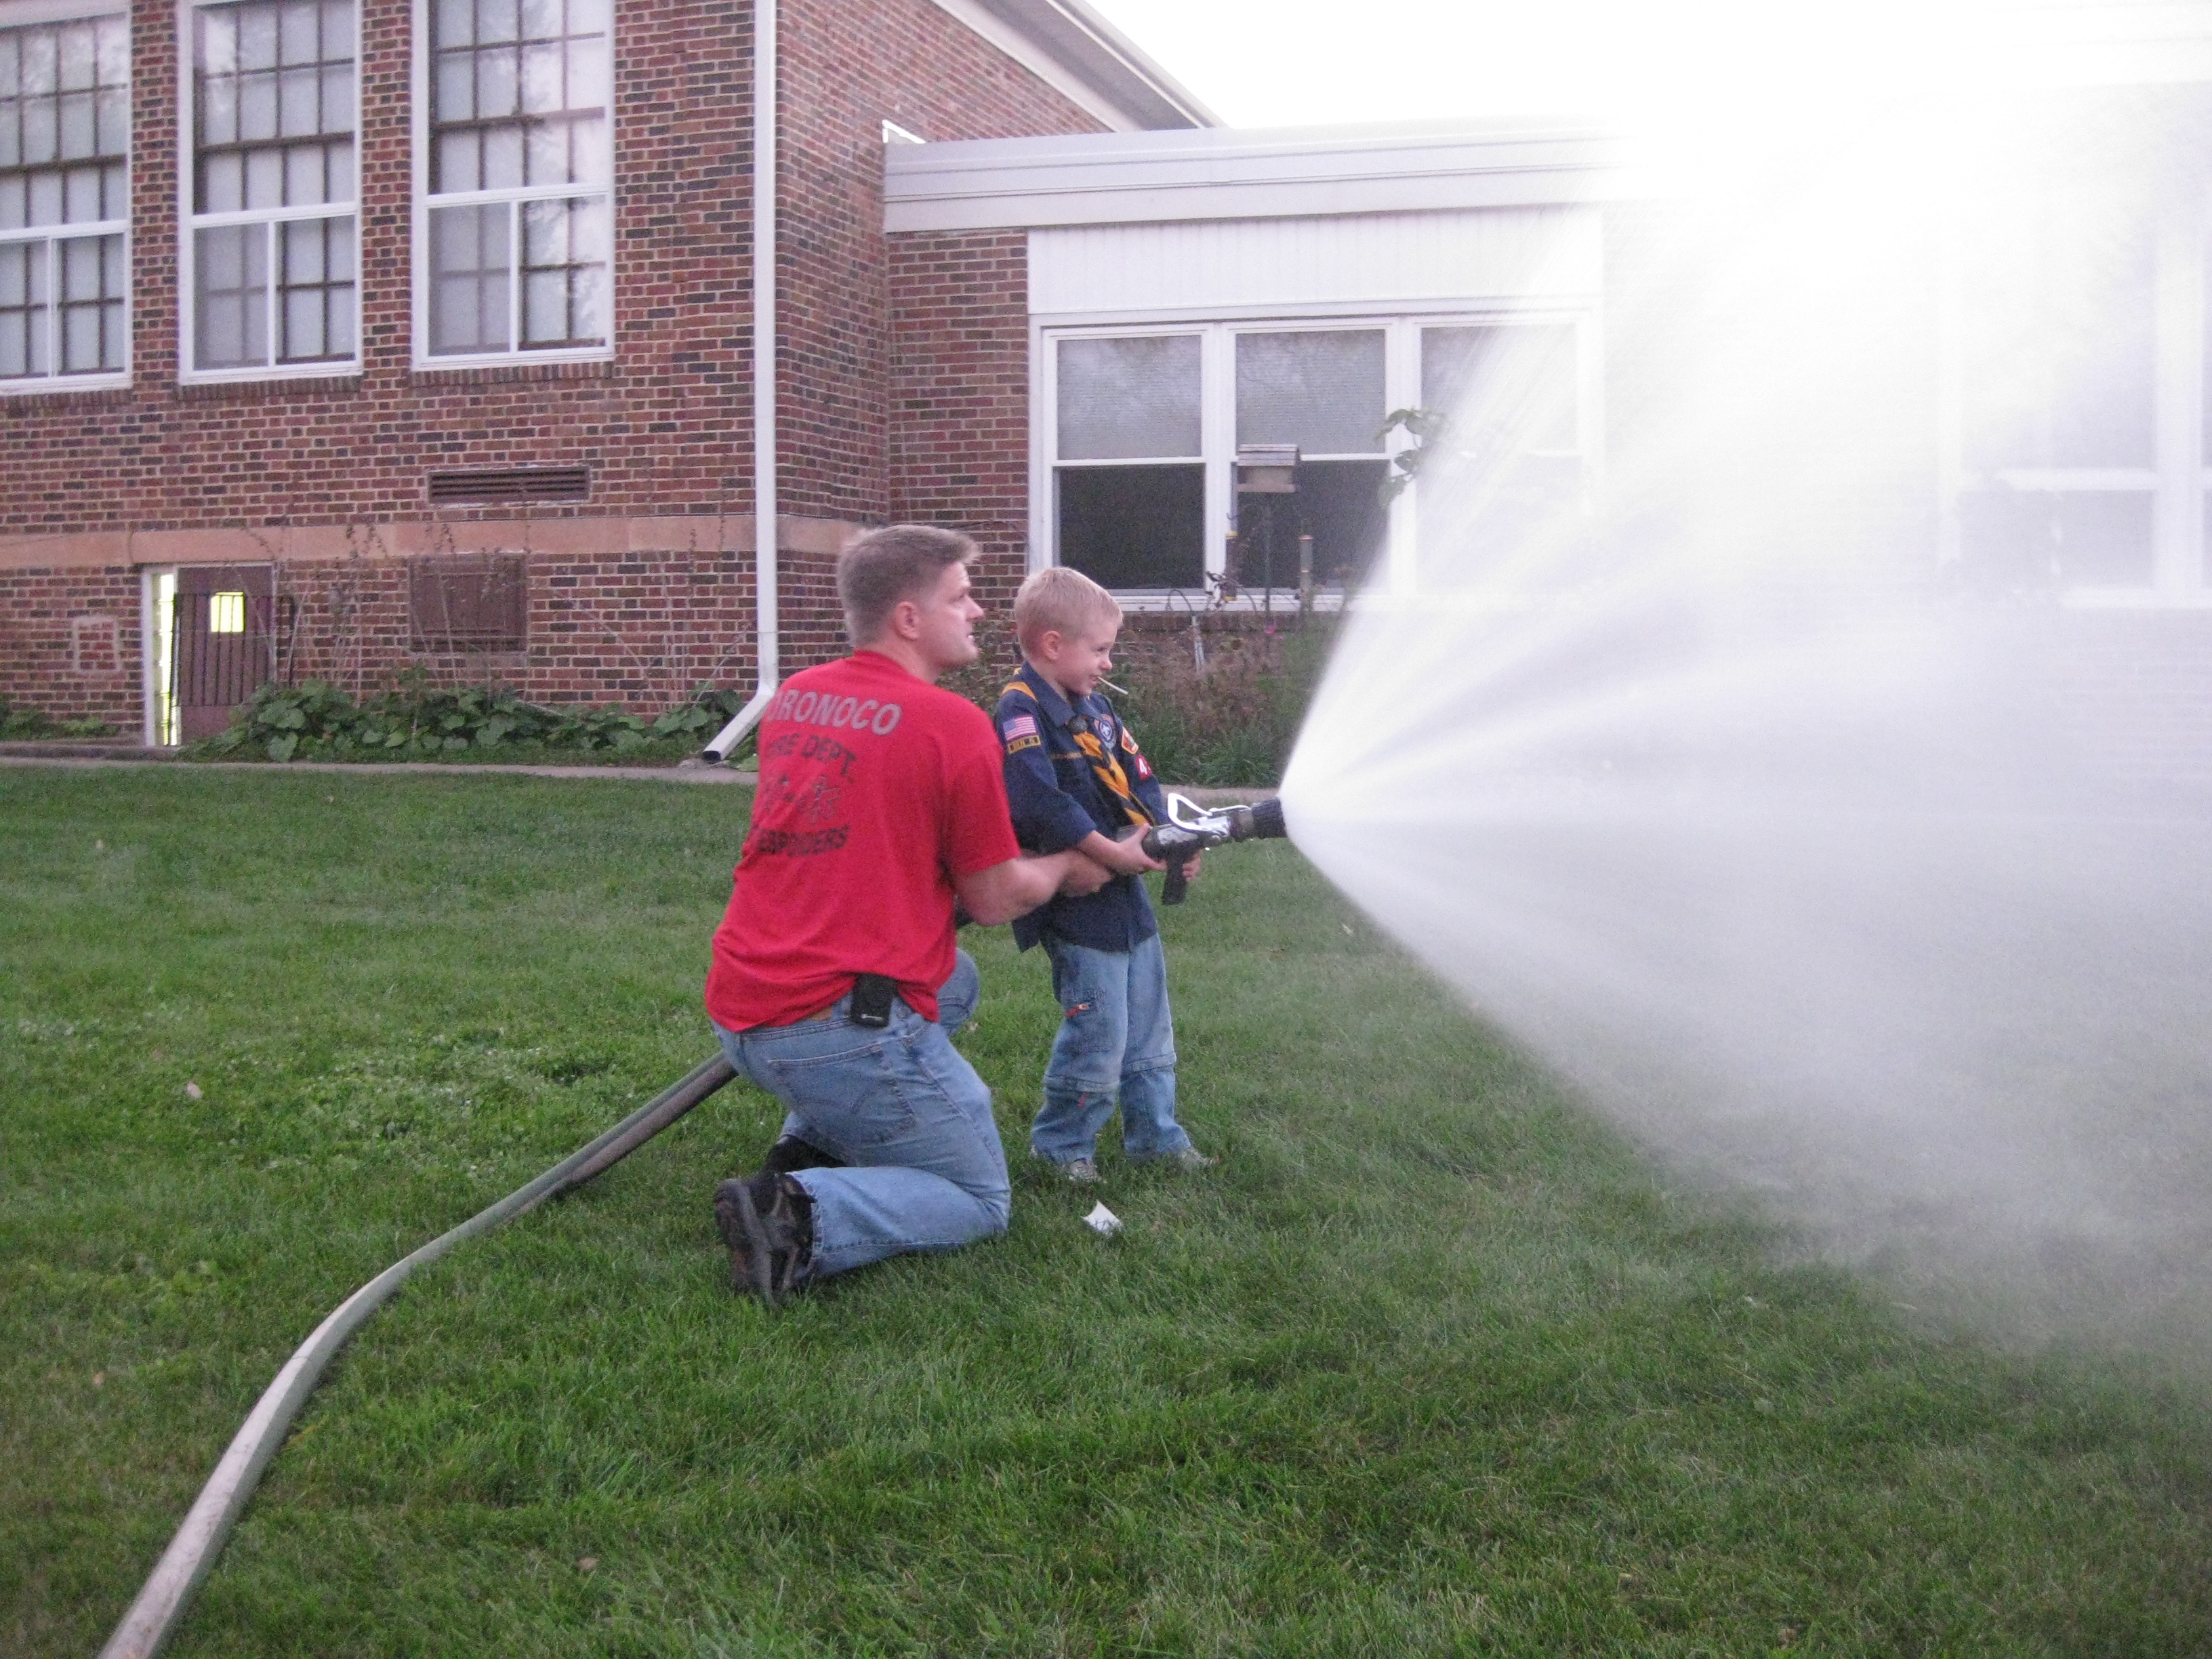 Ethan spraying water hose s cub scout popcorn